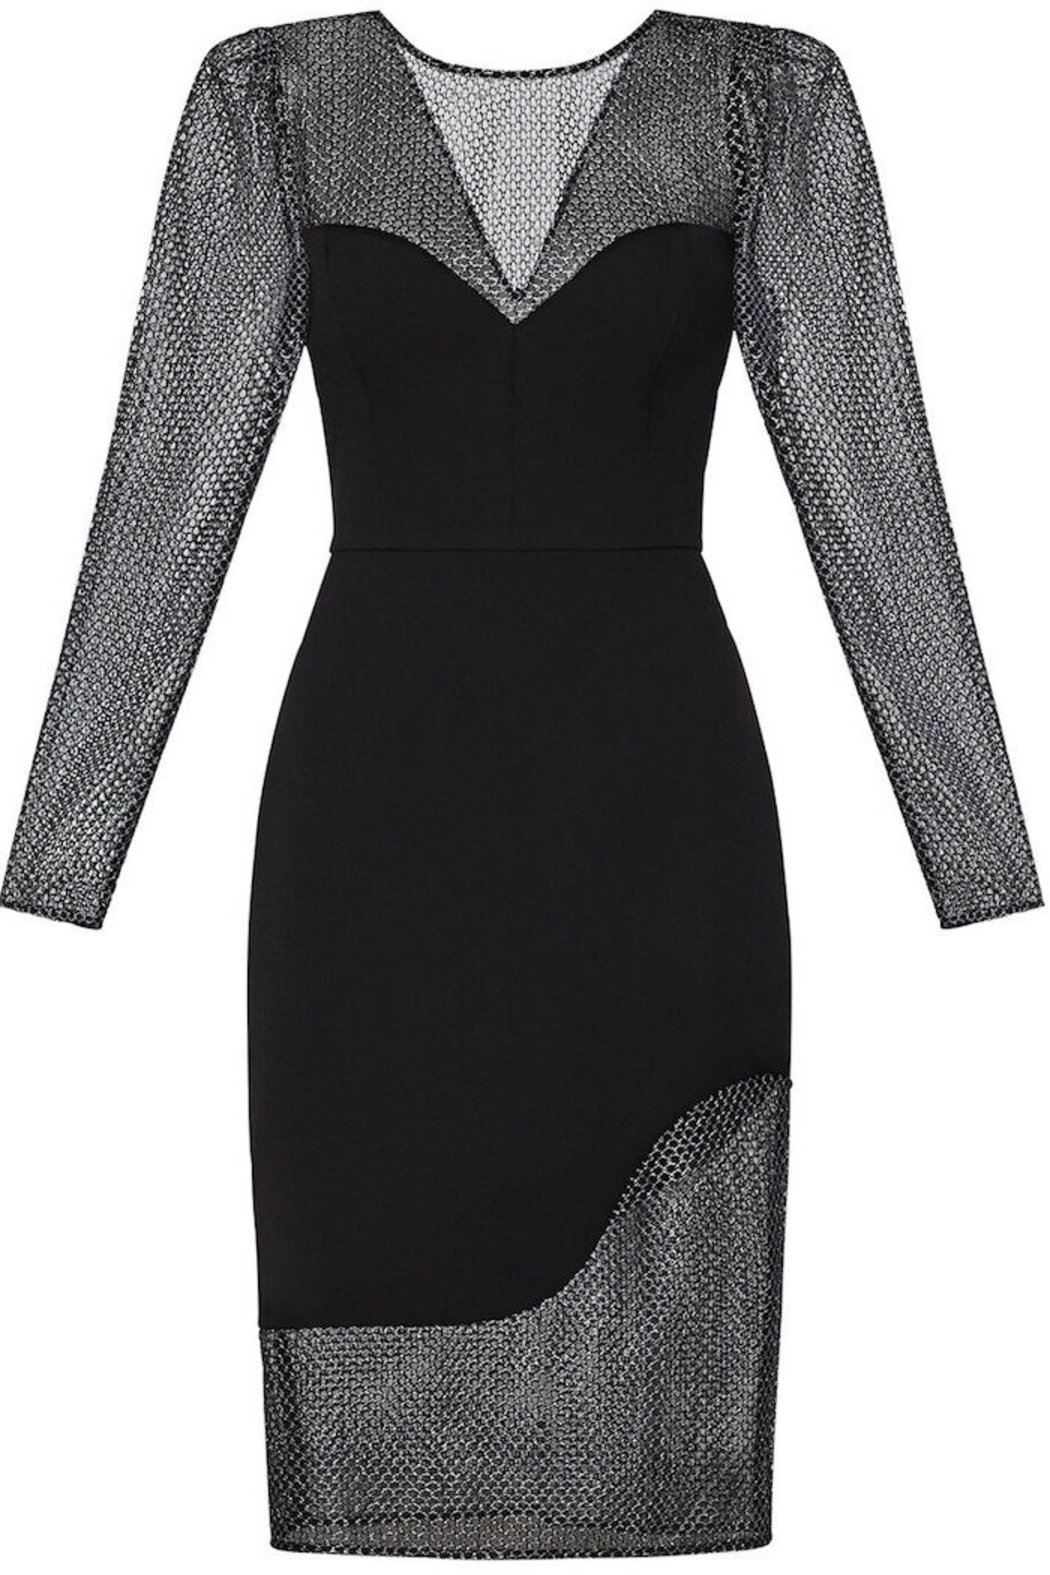 BCBG MAXAZRIA Chain Mail Dress - Side Cropped Image